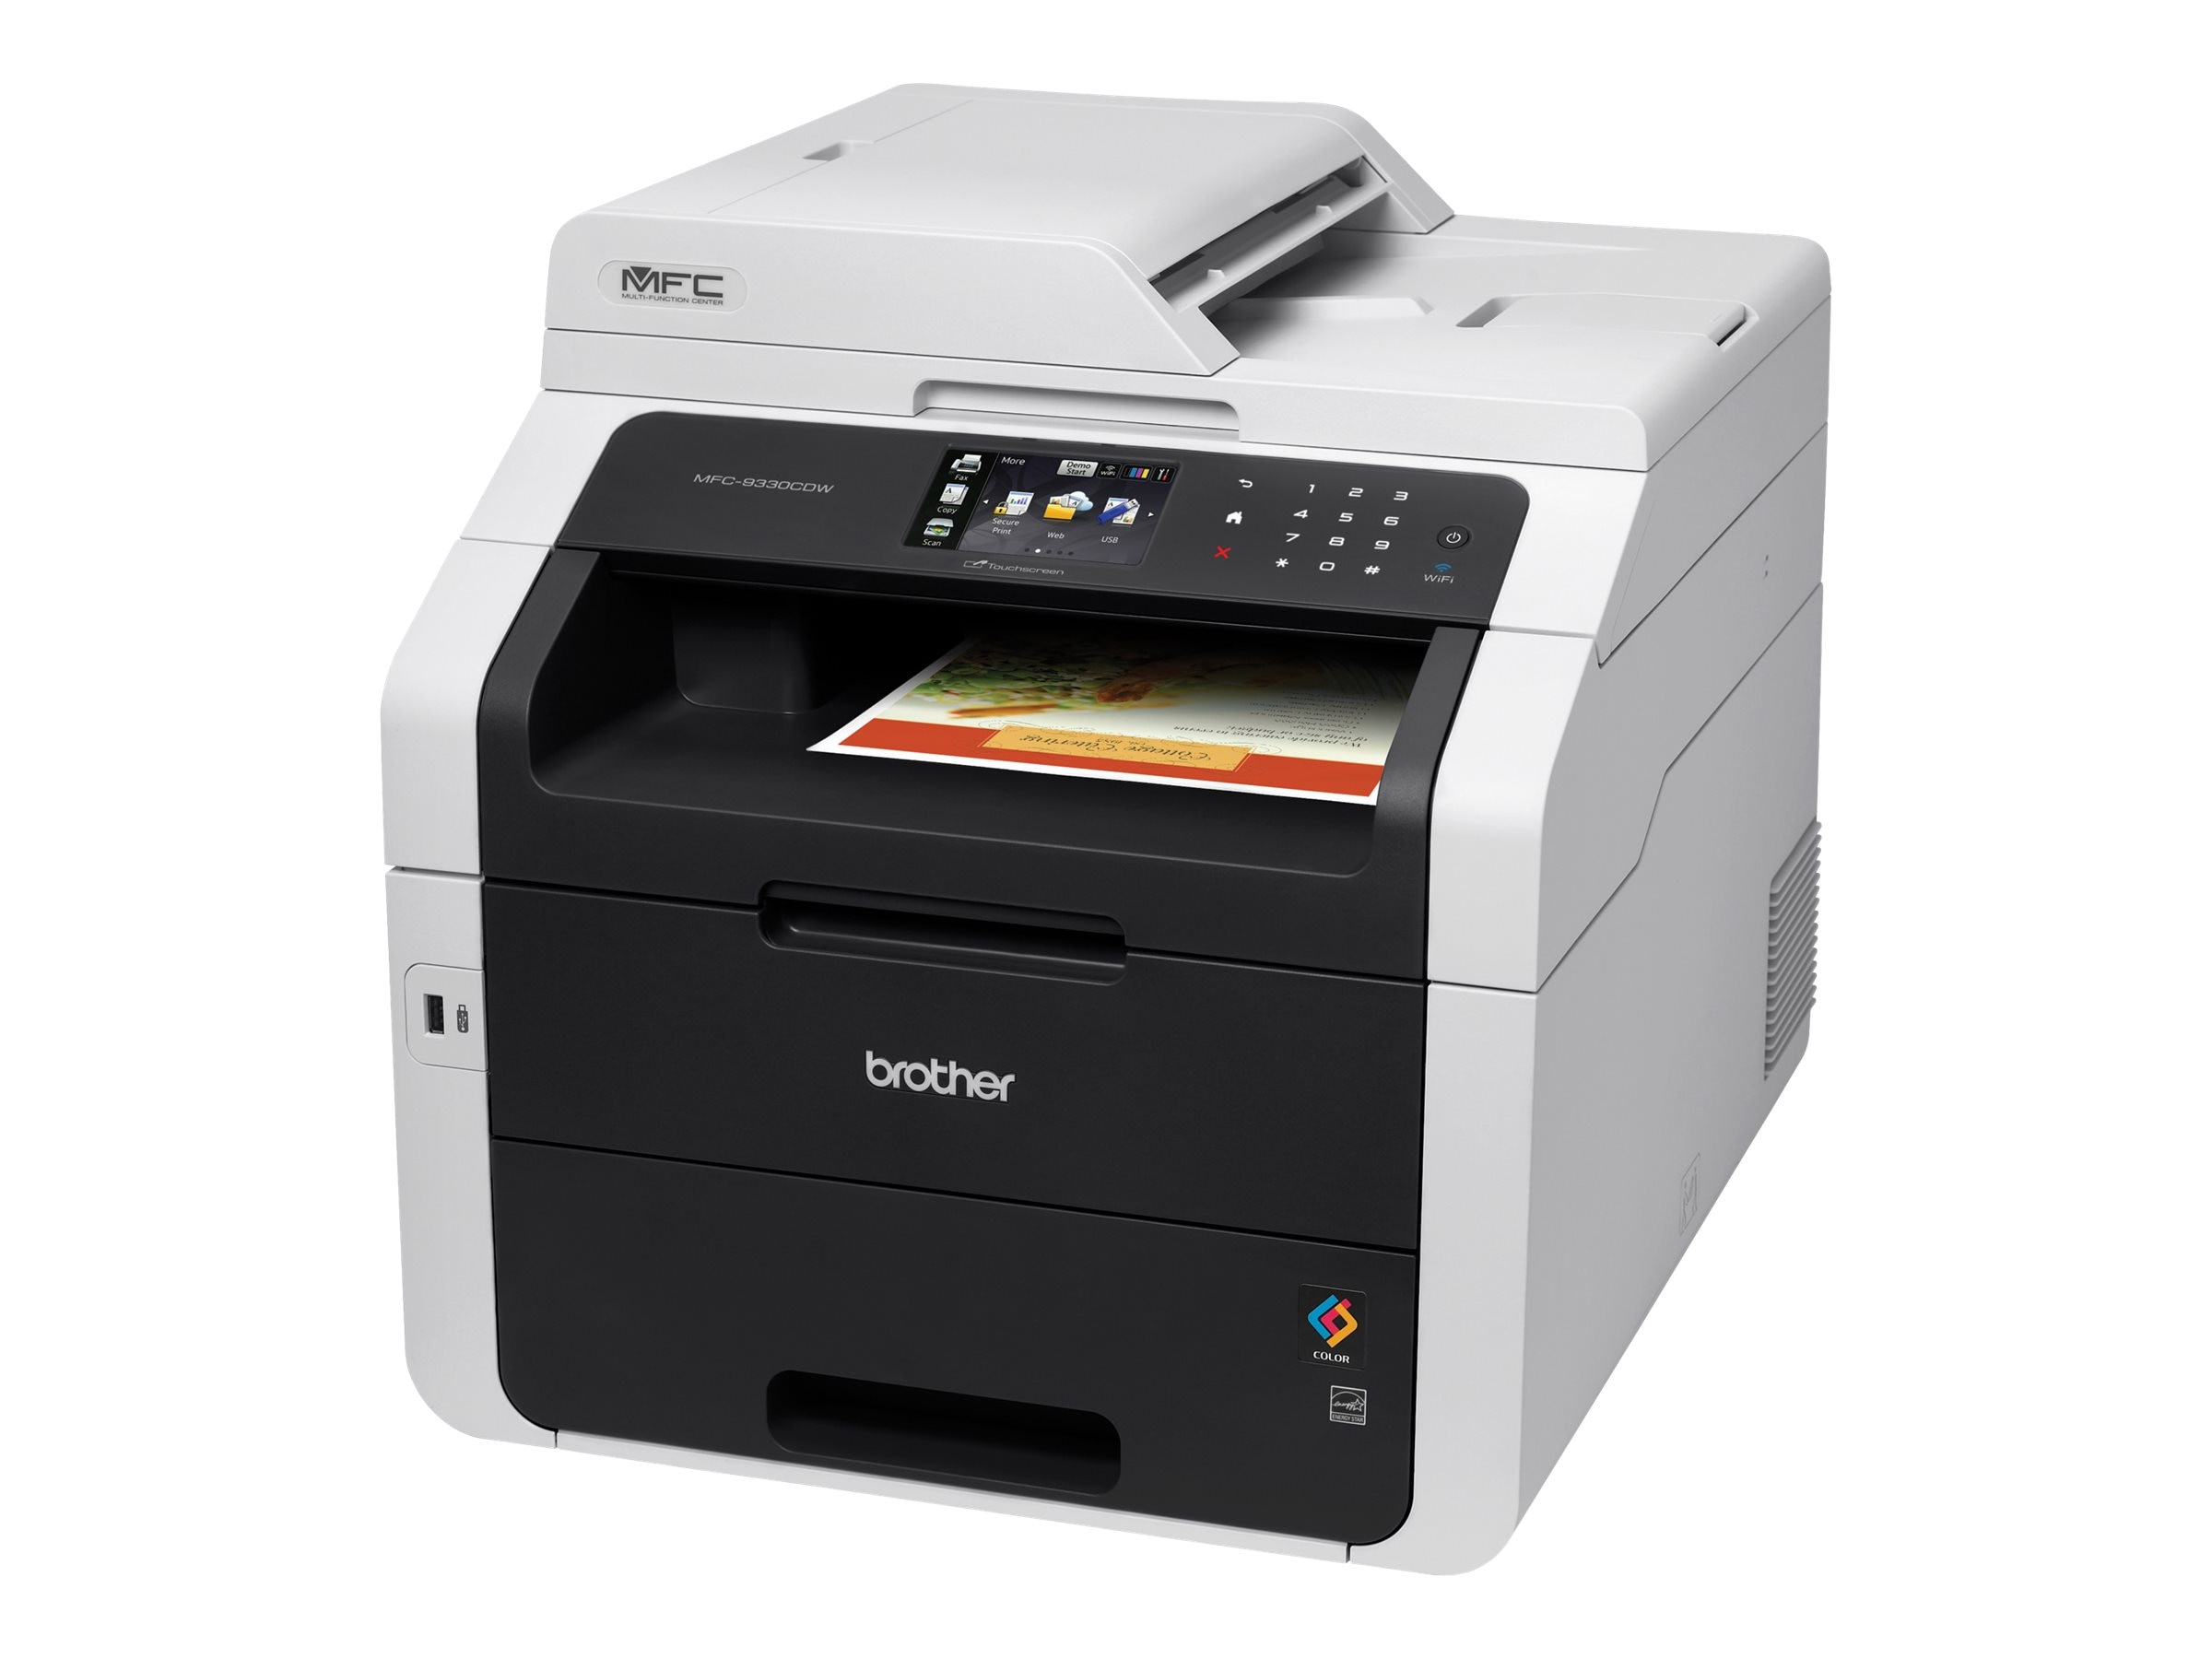 Brother MFC-9330CDW Digital Color All-In-One